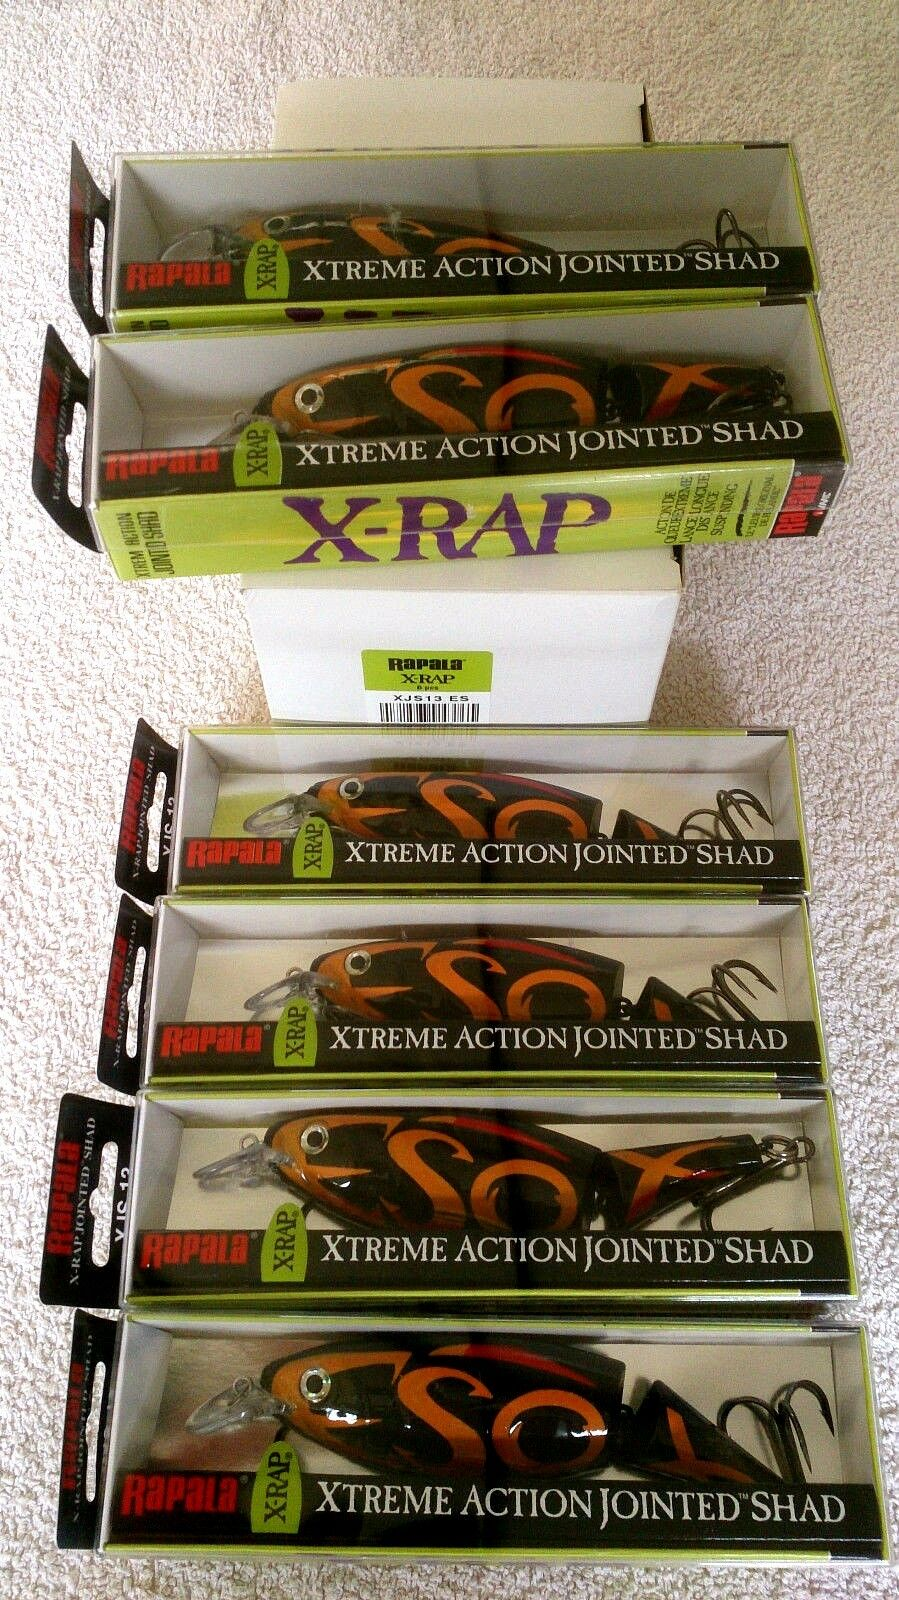 6x Rapala XJS13 ESOX - XRAP Jointed Shad - Dealer Box - Limited Edition